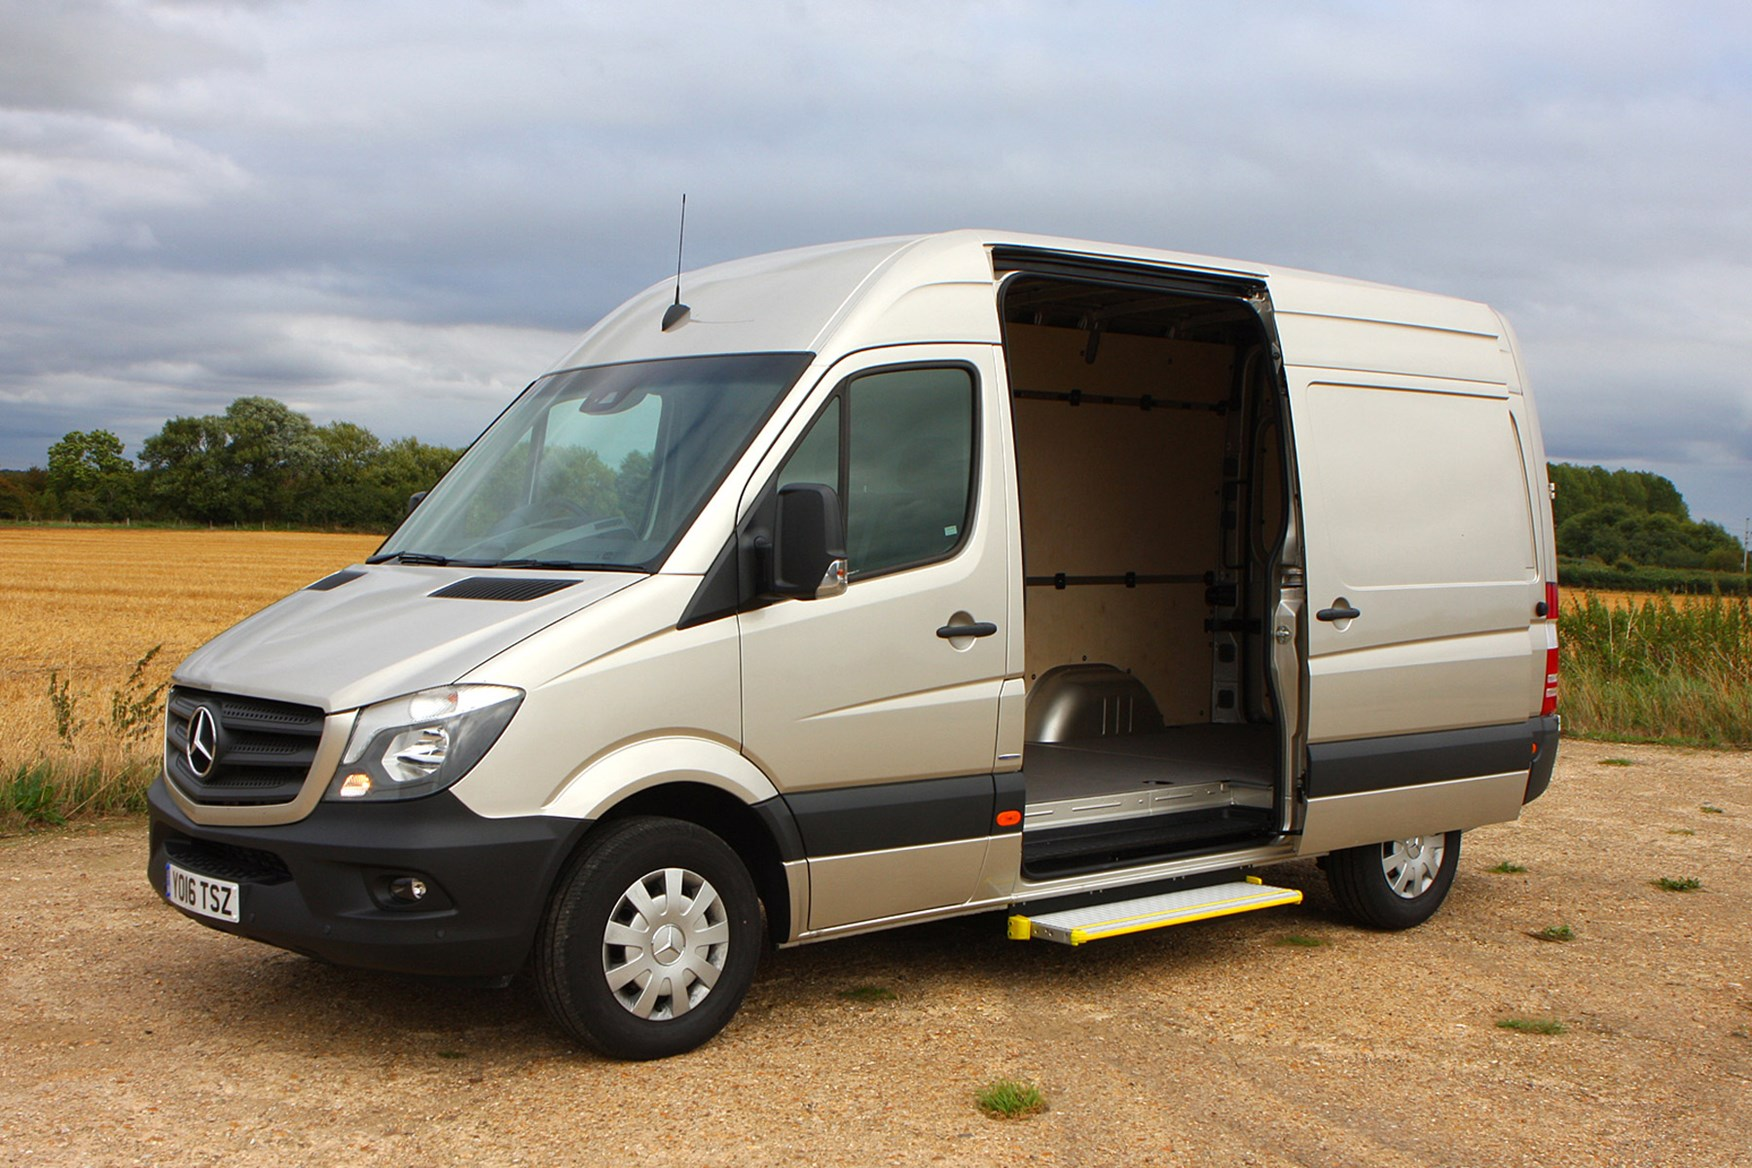 Mercedes-Benz Sprinter full review on Parkers Vans - load area